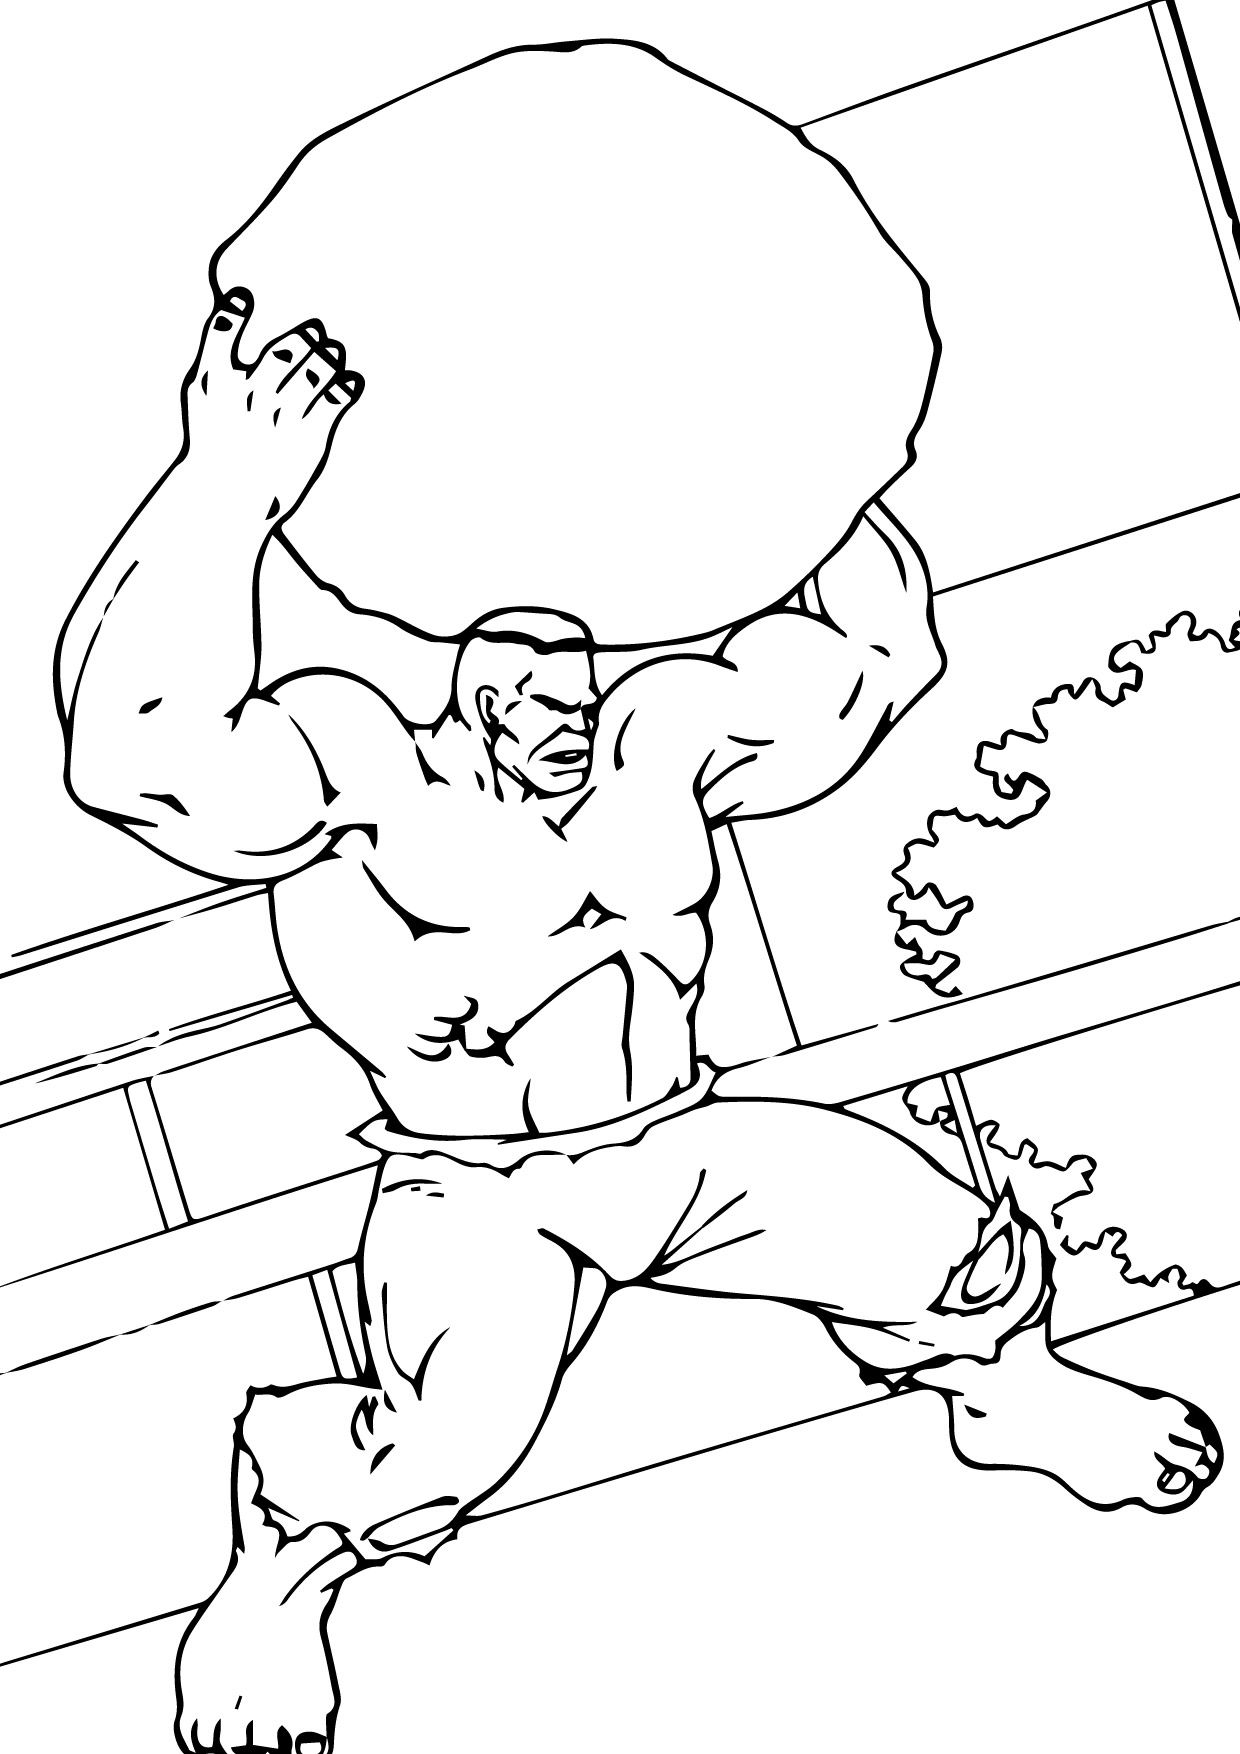 cool Coloring Page 22-09-2015_042256 Check more at http